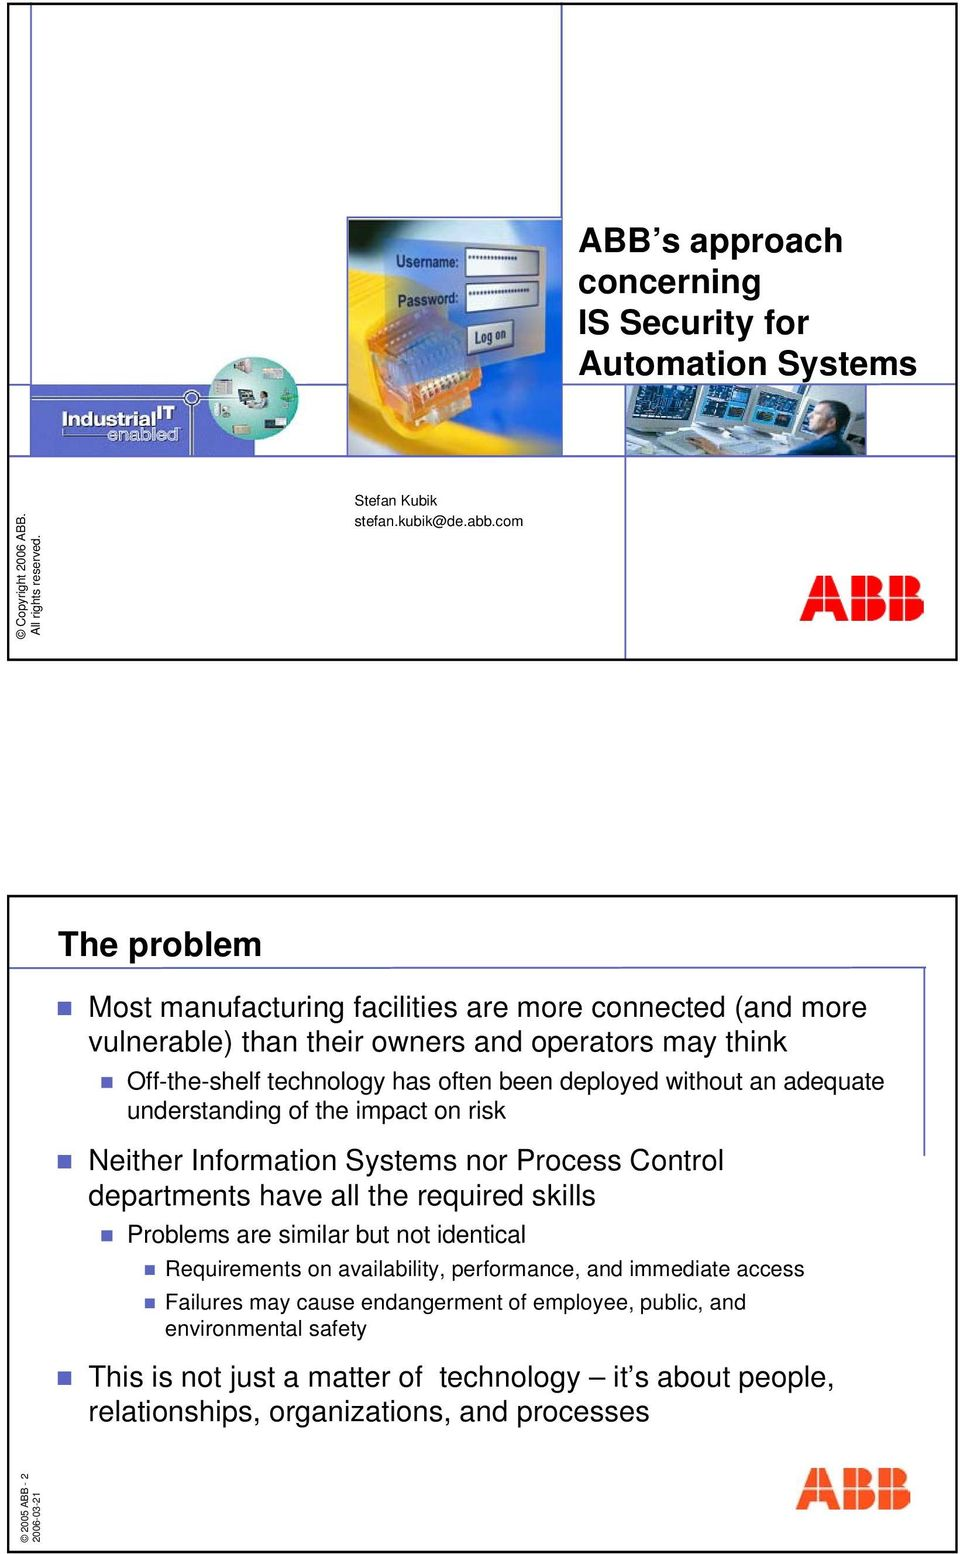 adequate understanding of the impact on risk Neither Information Systems nor Process Control departments have all the required skills Problems are similar but not identical Requirements on